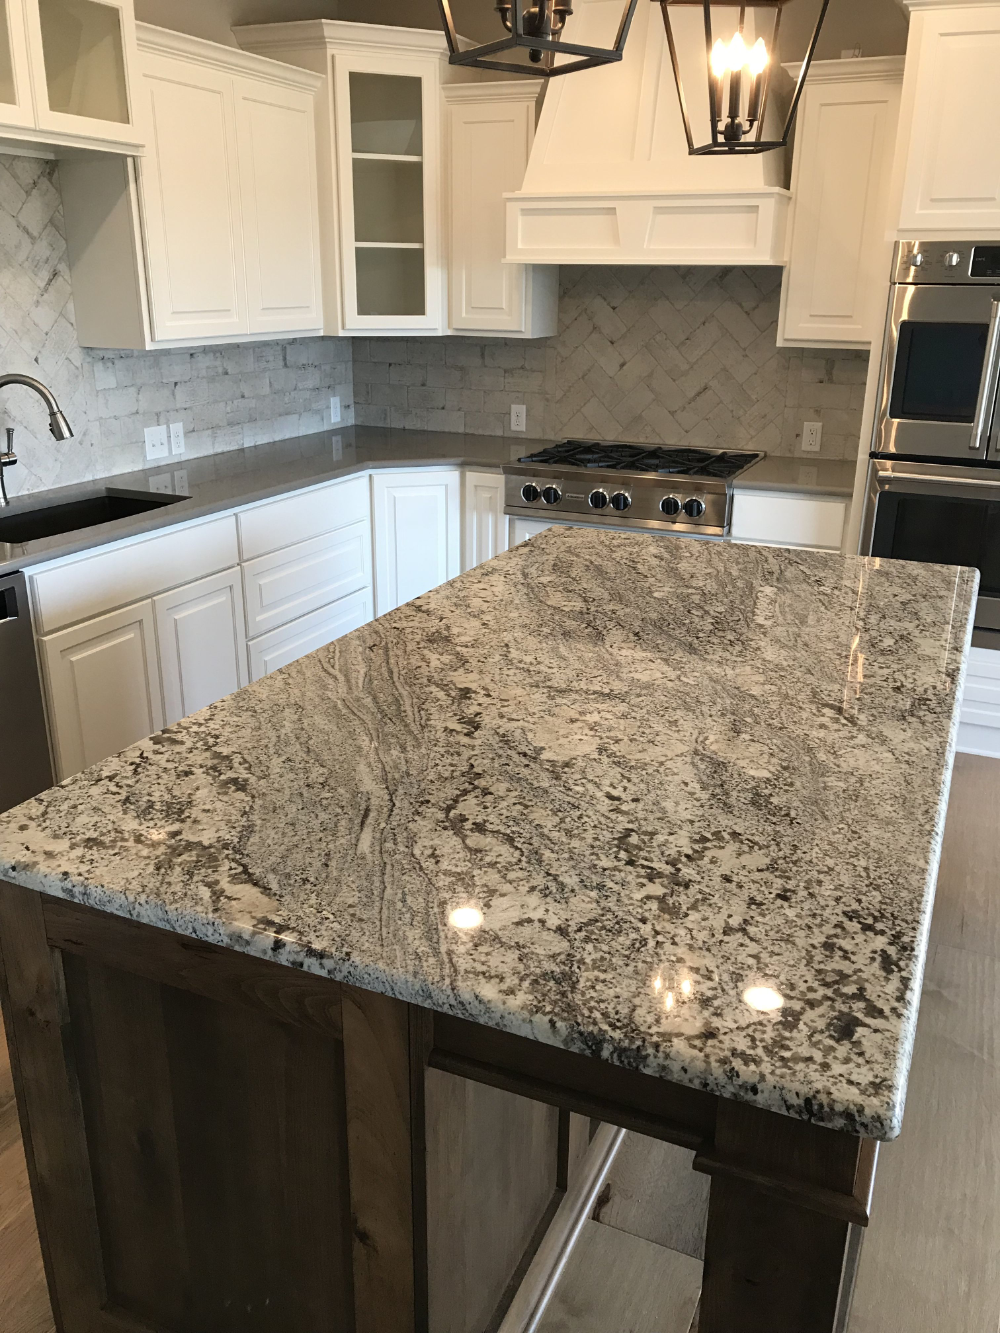 Nevaska Granite With White Cabinets Google Search In 2020 Granite Countertops Kitchen Granite Kitchen Granite Countertops